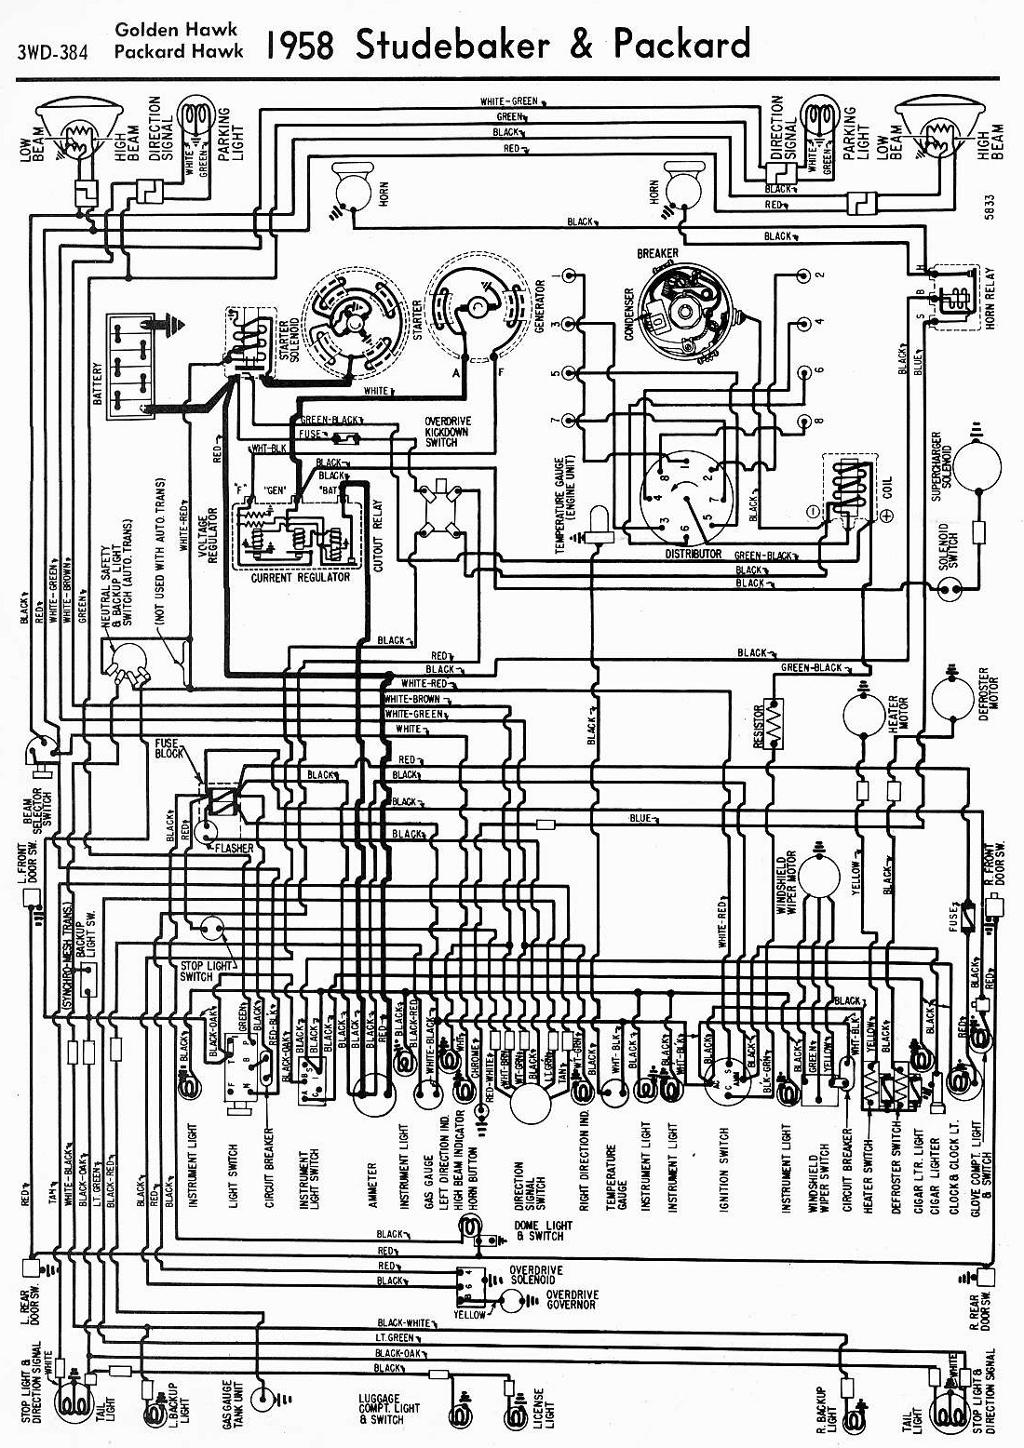 1954 Chrysler New Yorker Wiring Diagram Library. 1948 Packard Wiring Diagram Explained Diagrams Rh Sbsun Co 1956 Chrysler New. Chrysler. 1948 Chrysler Windsor Wiring Diagram At Scoala.co